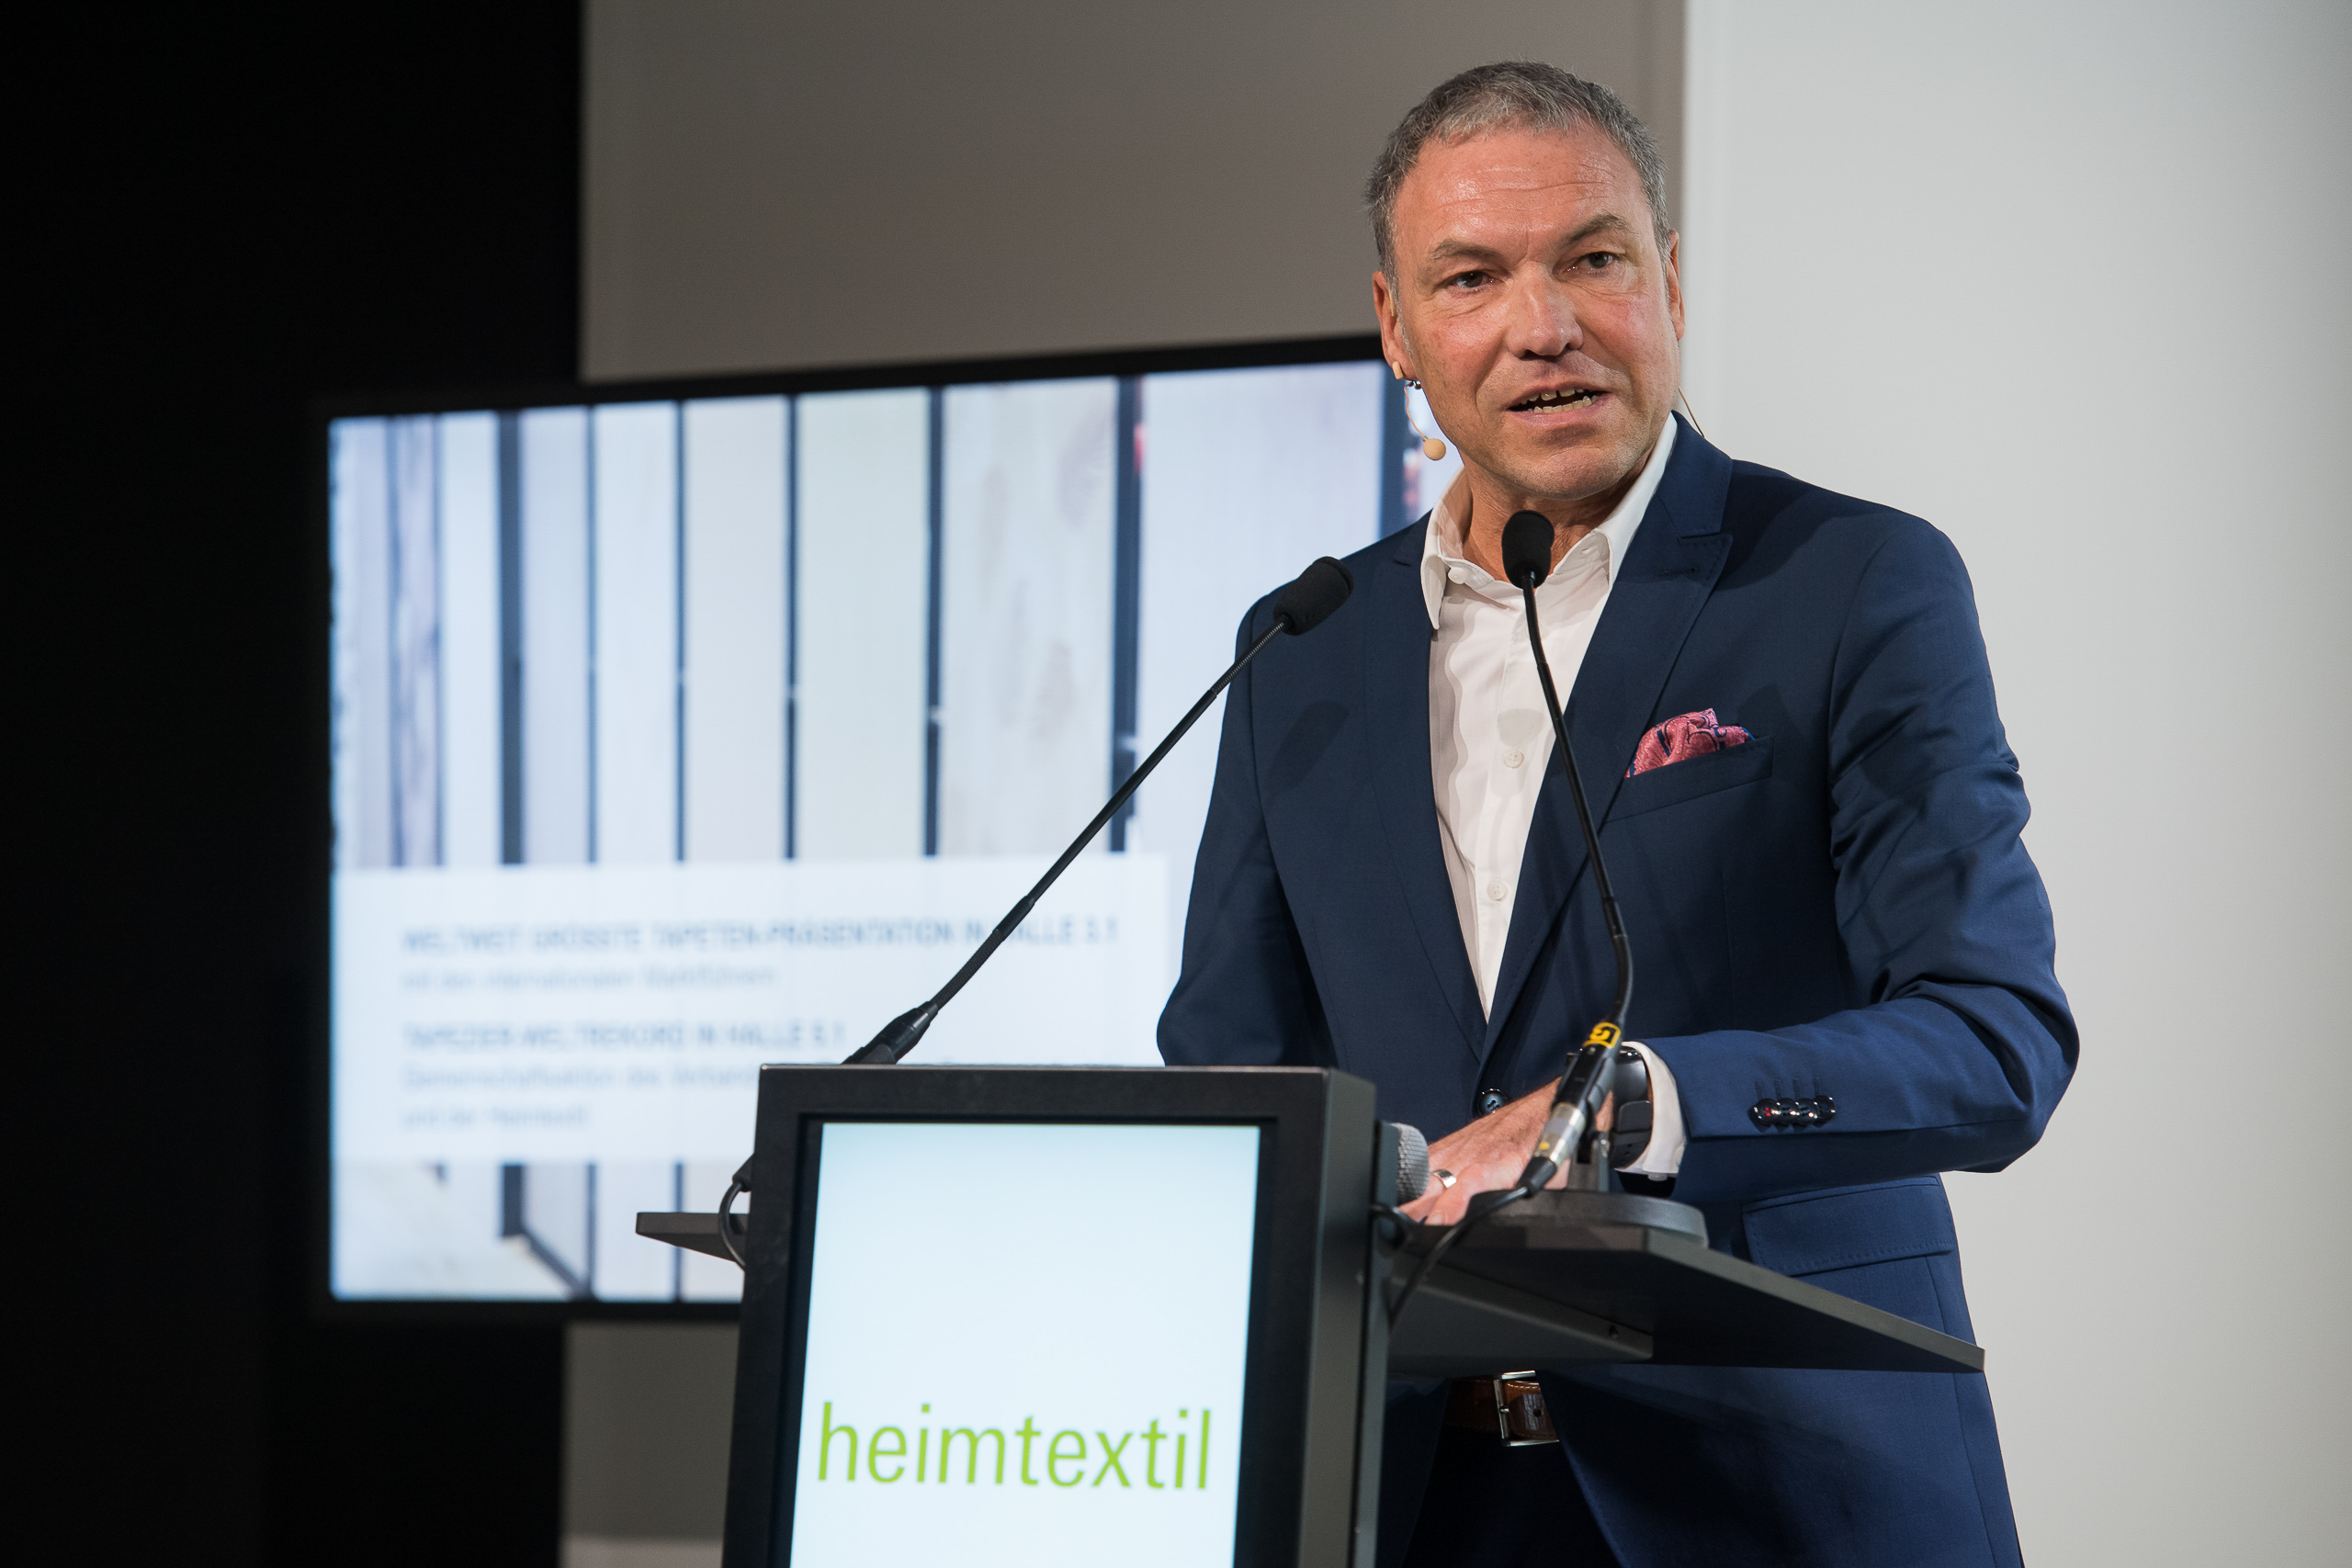 Press conference, Olaf Schmidt, Vice President Textiles & Textile Technologies, Messe Frankfurt Exhibition GmbH